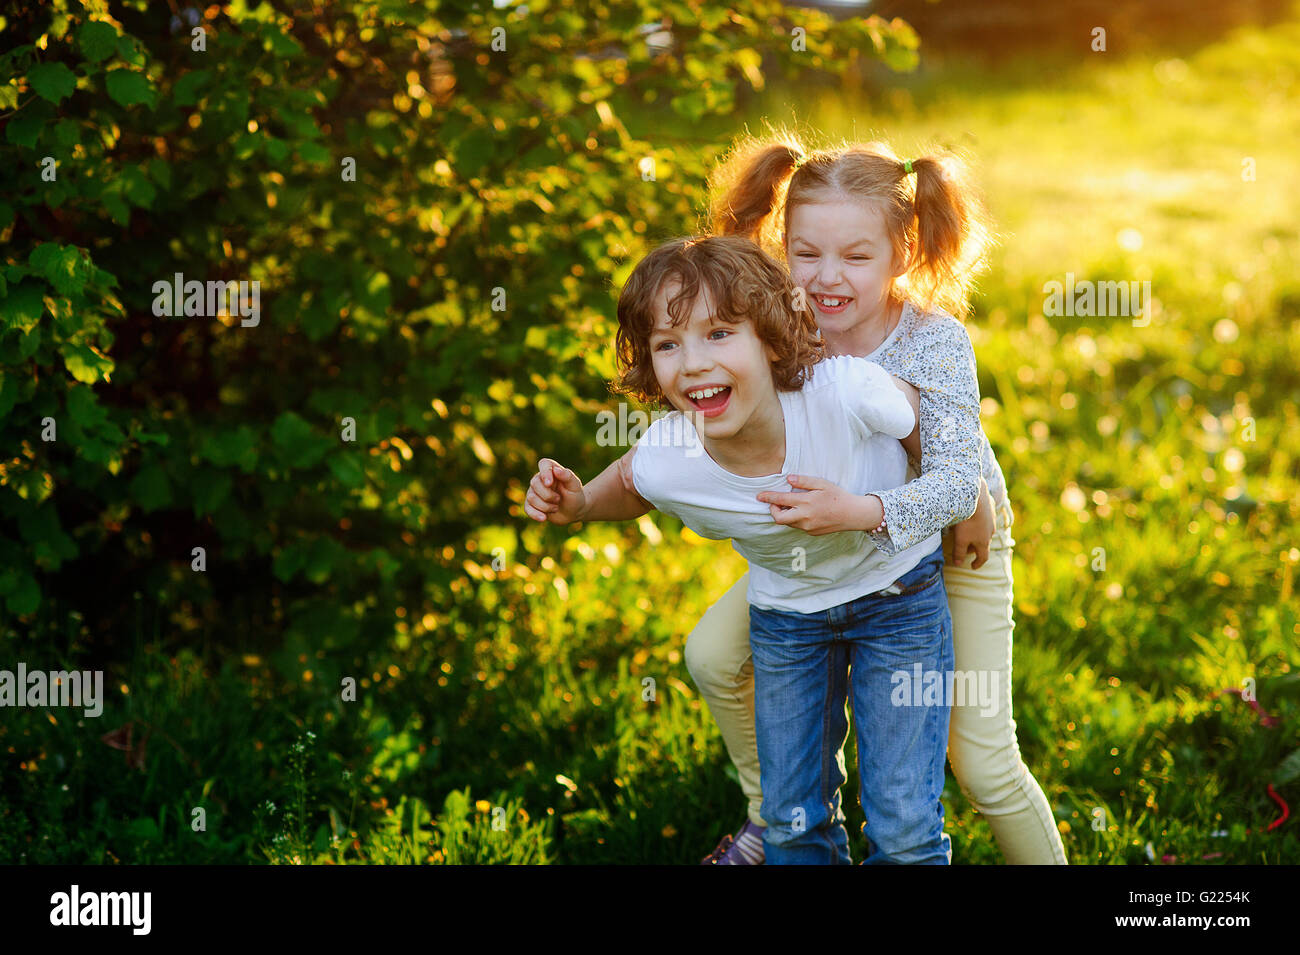 Fair-haired boy and girl play park - Stock Image